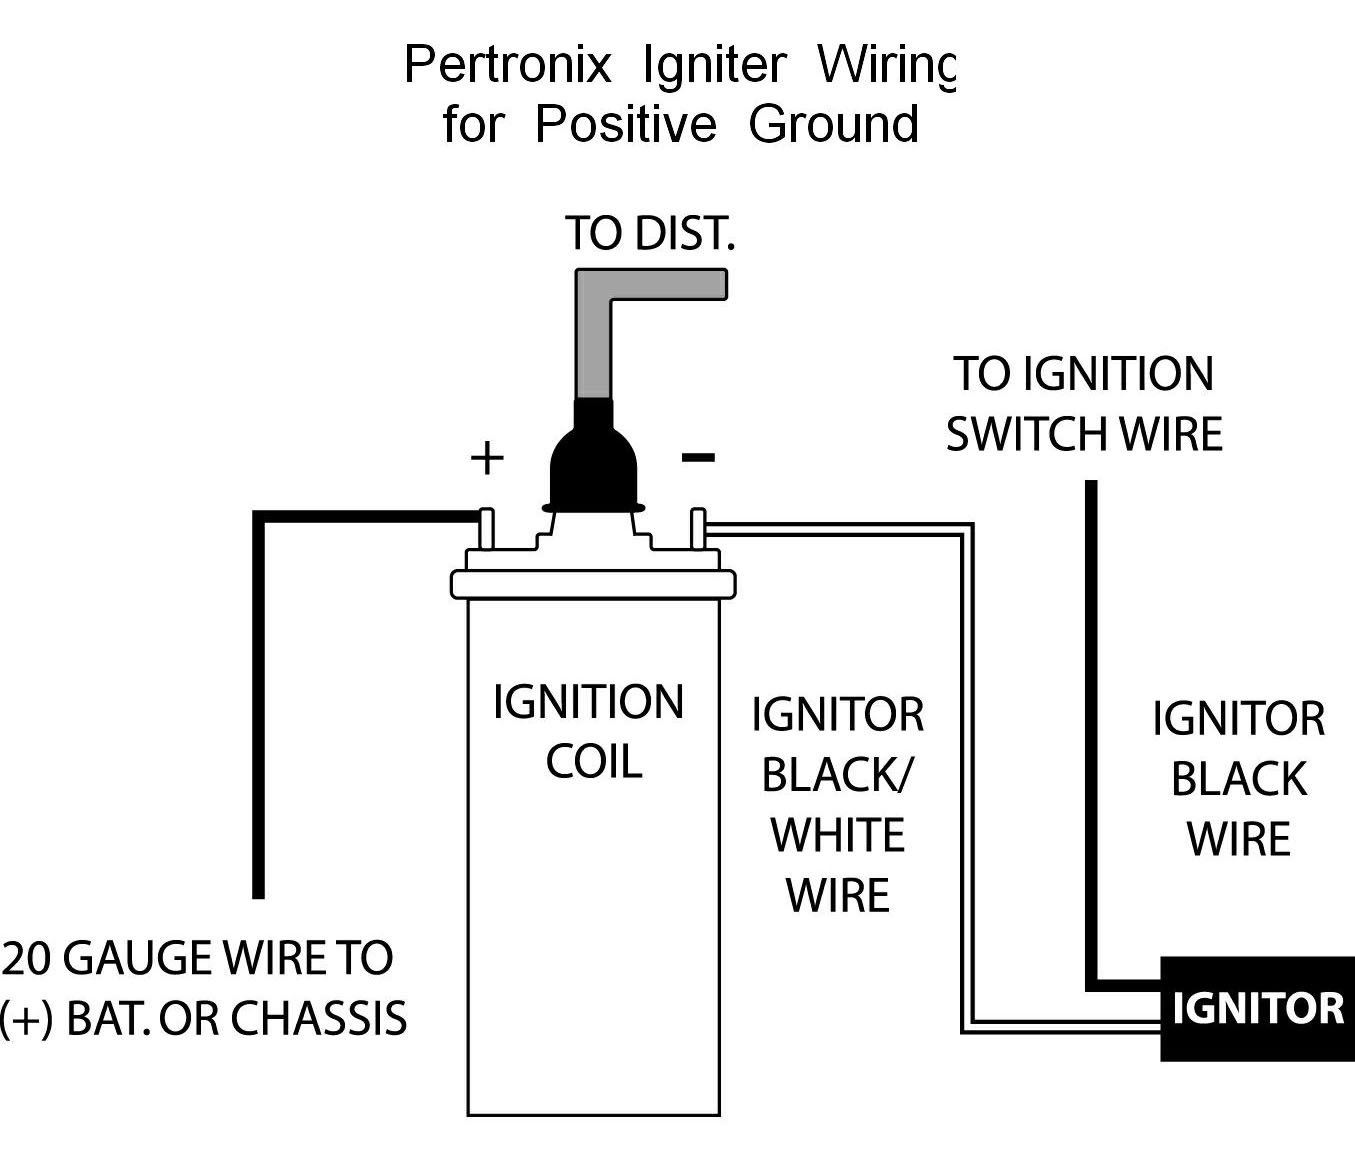 PerPosGndWiring pertronix positive ground wiring pertronix ignitor wiring diagram at gsmx.co